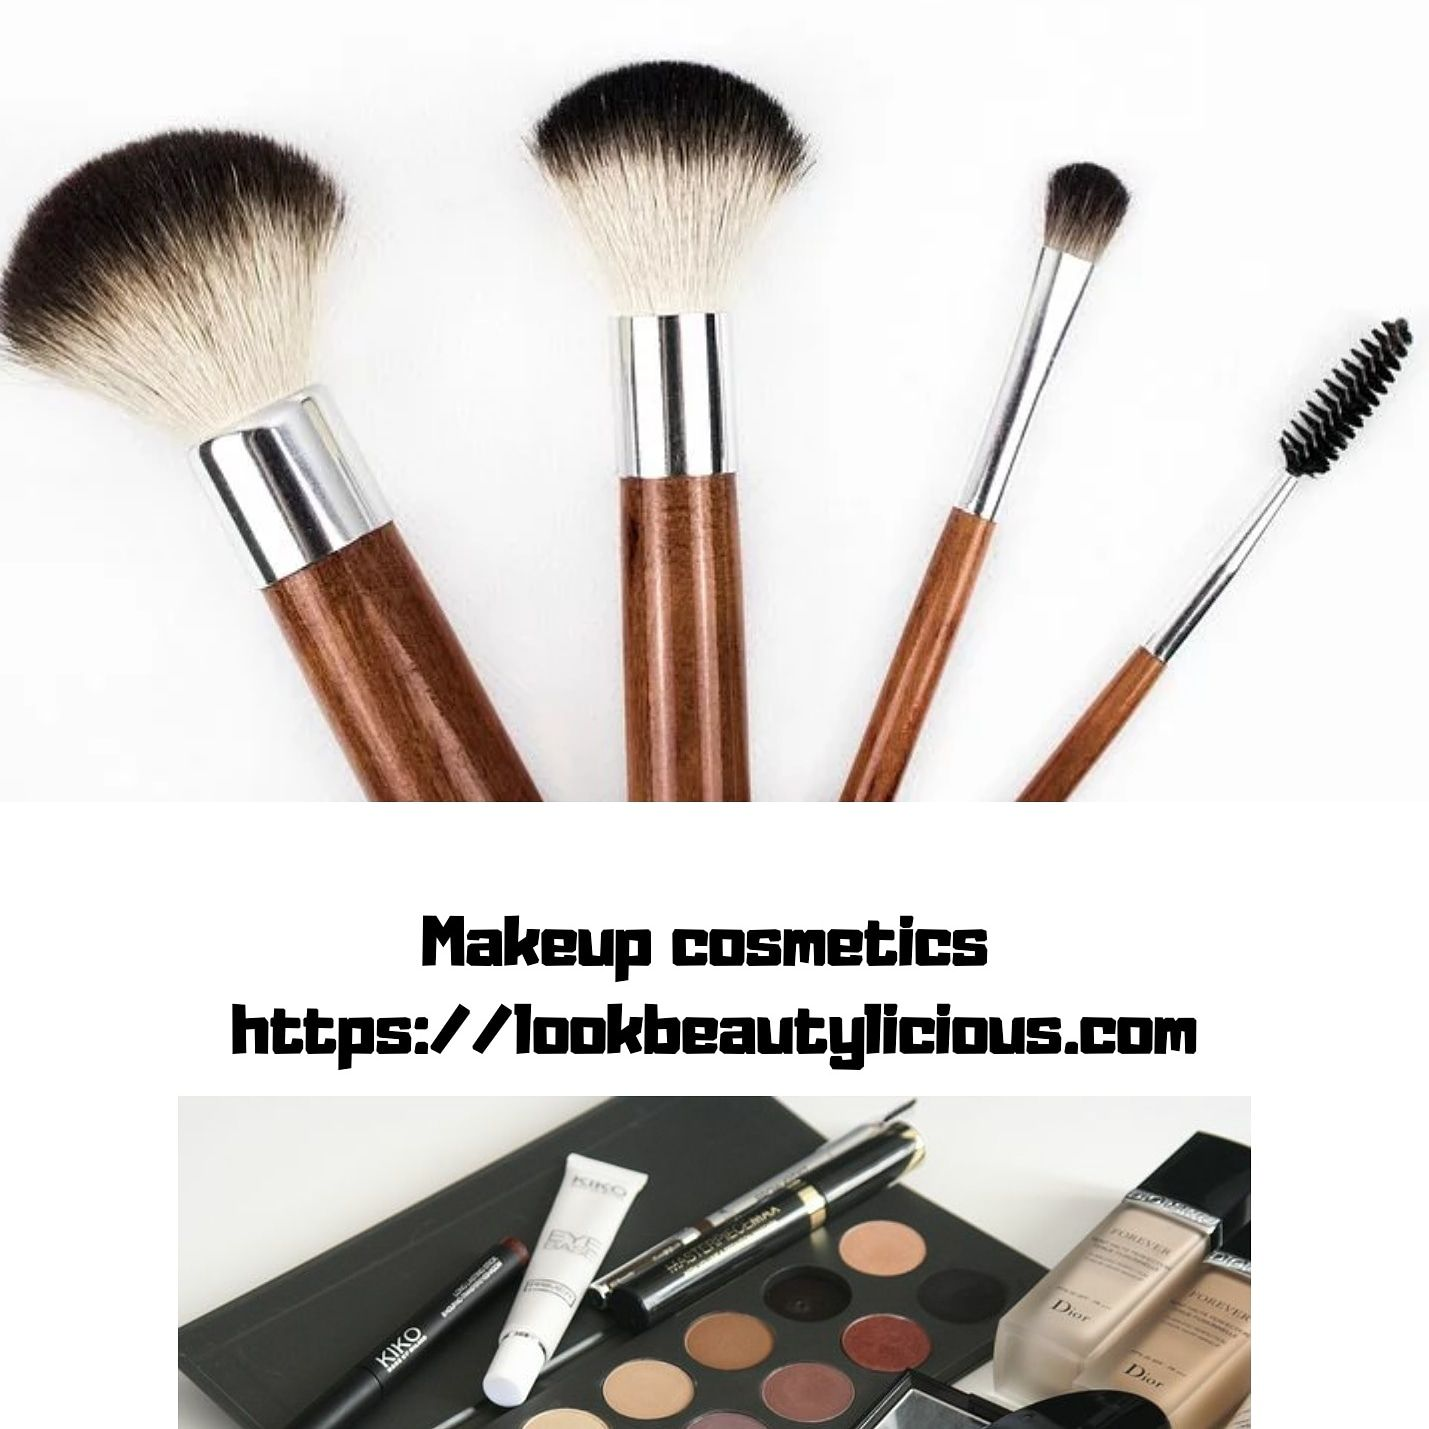 Look beauty licious we have all types of makeup products